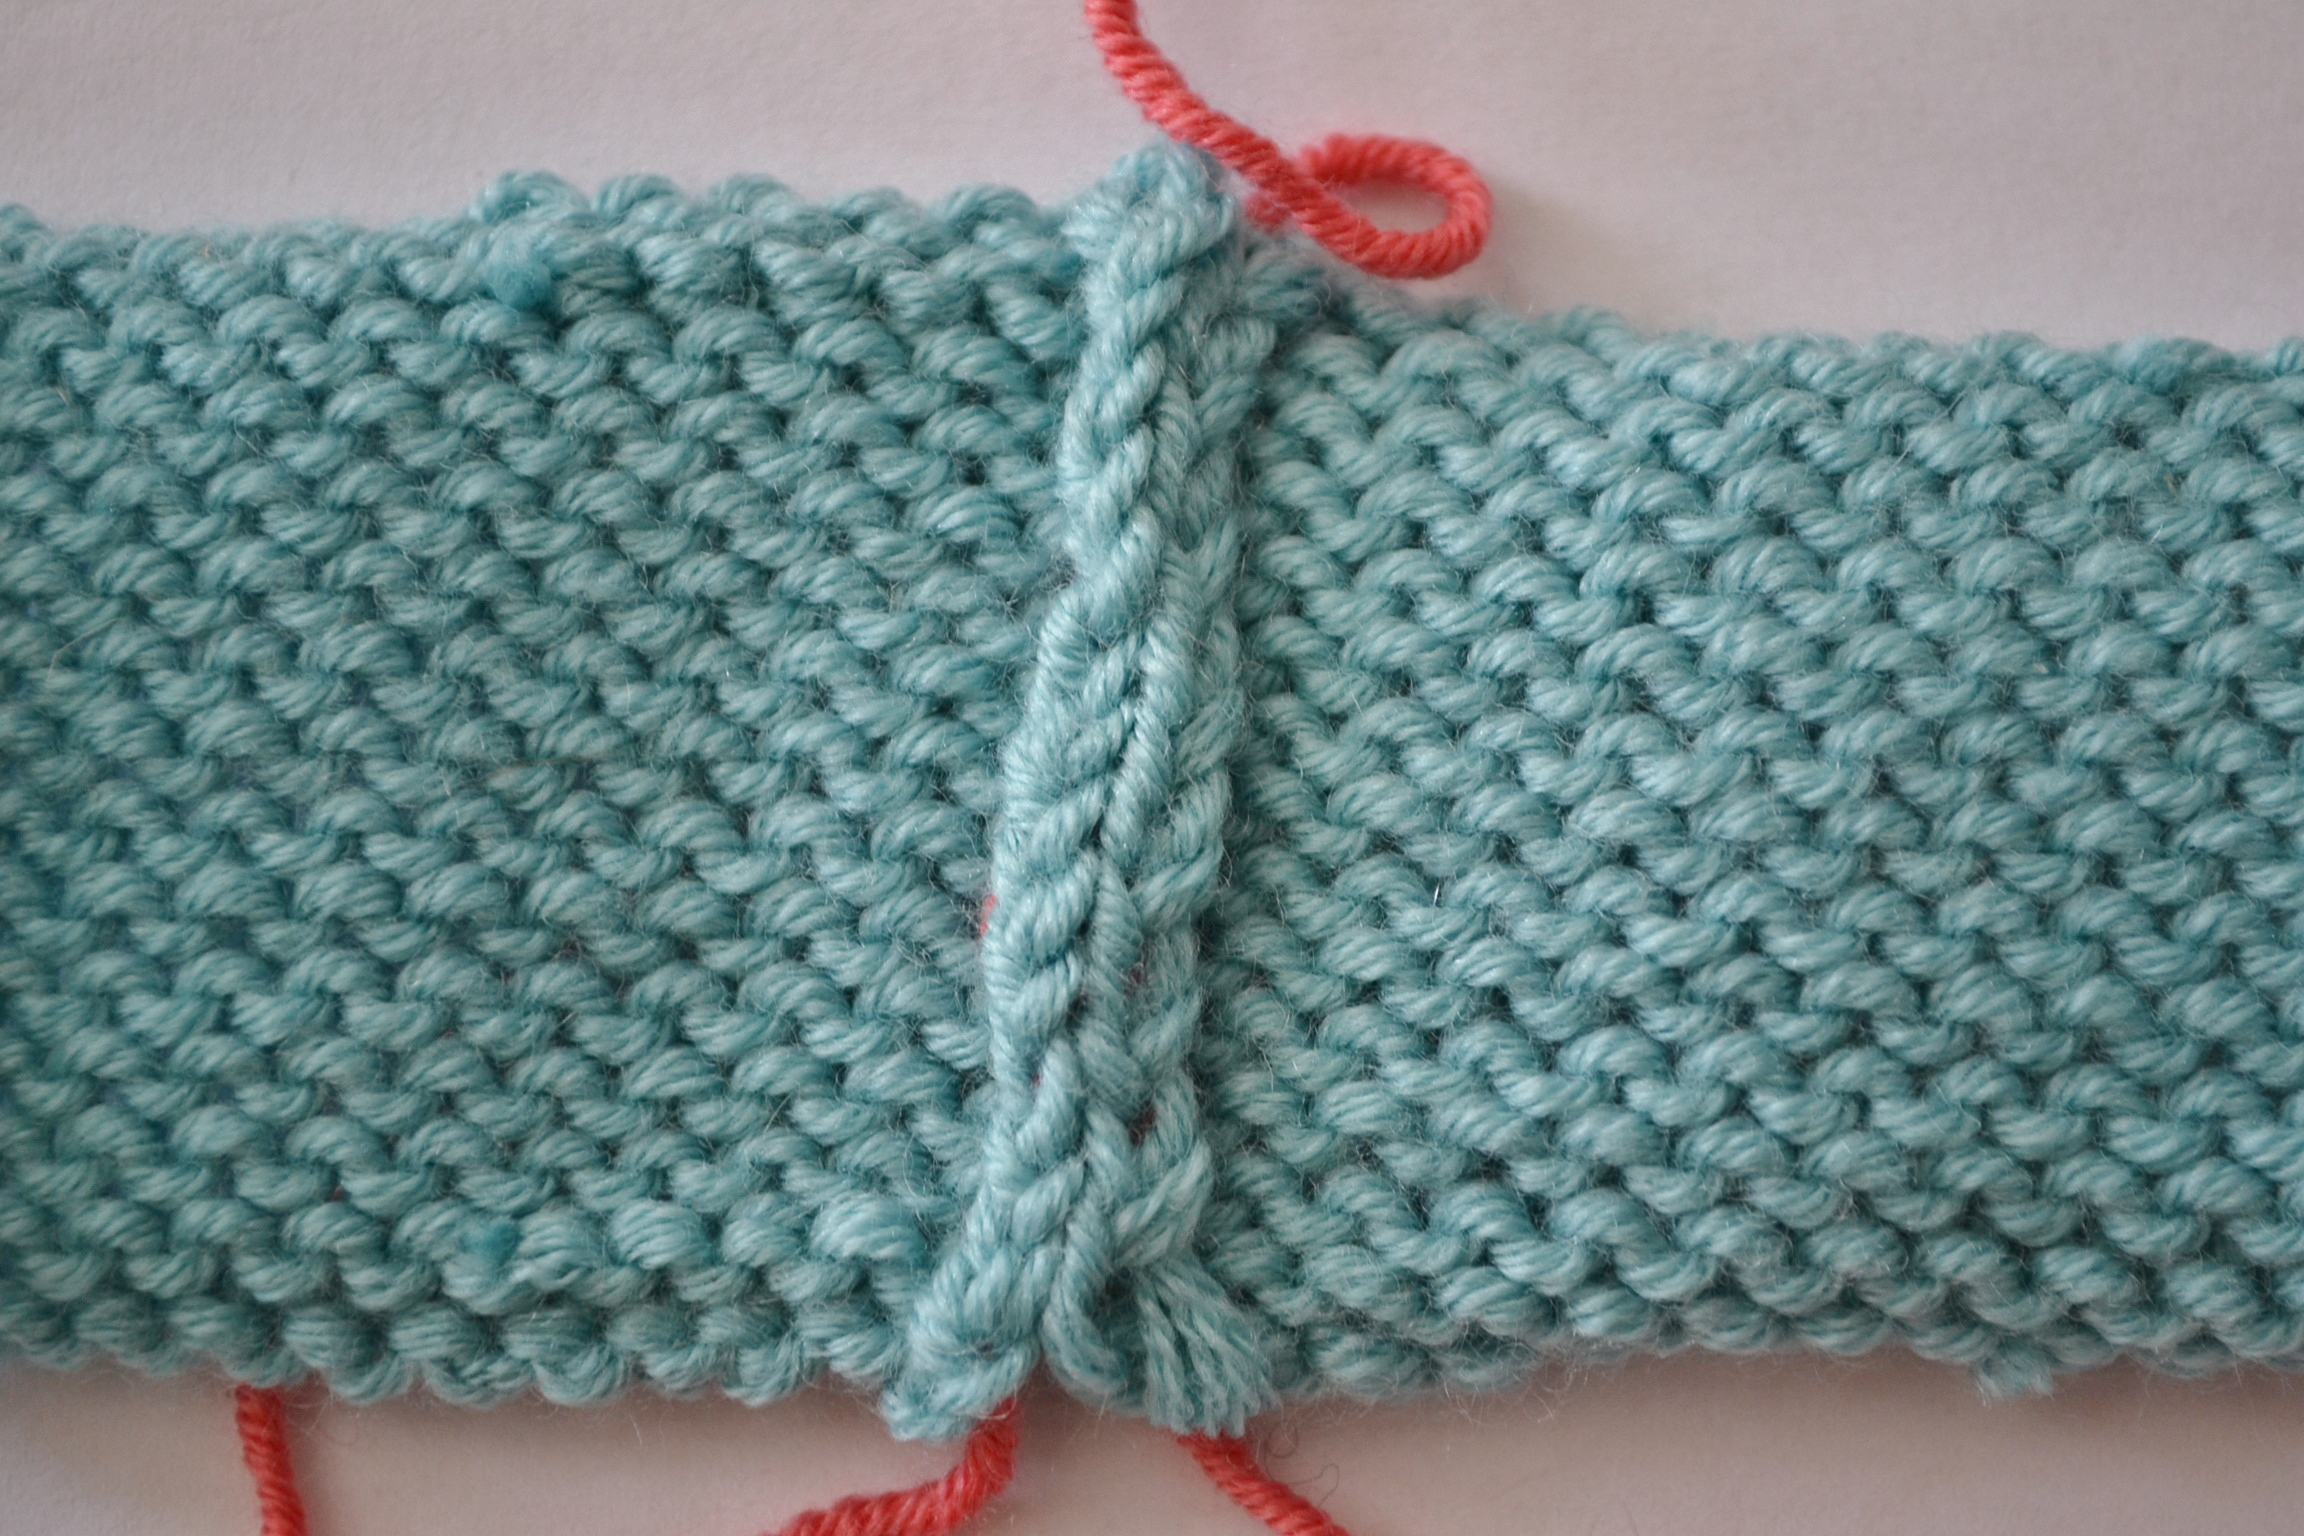 Knitting Stitches Joining Seams : How to Sew Invisible Vertical Seams in Knitting with Mattress Stitch - aknitica